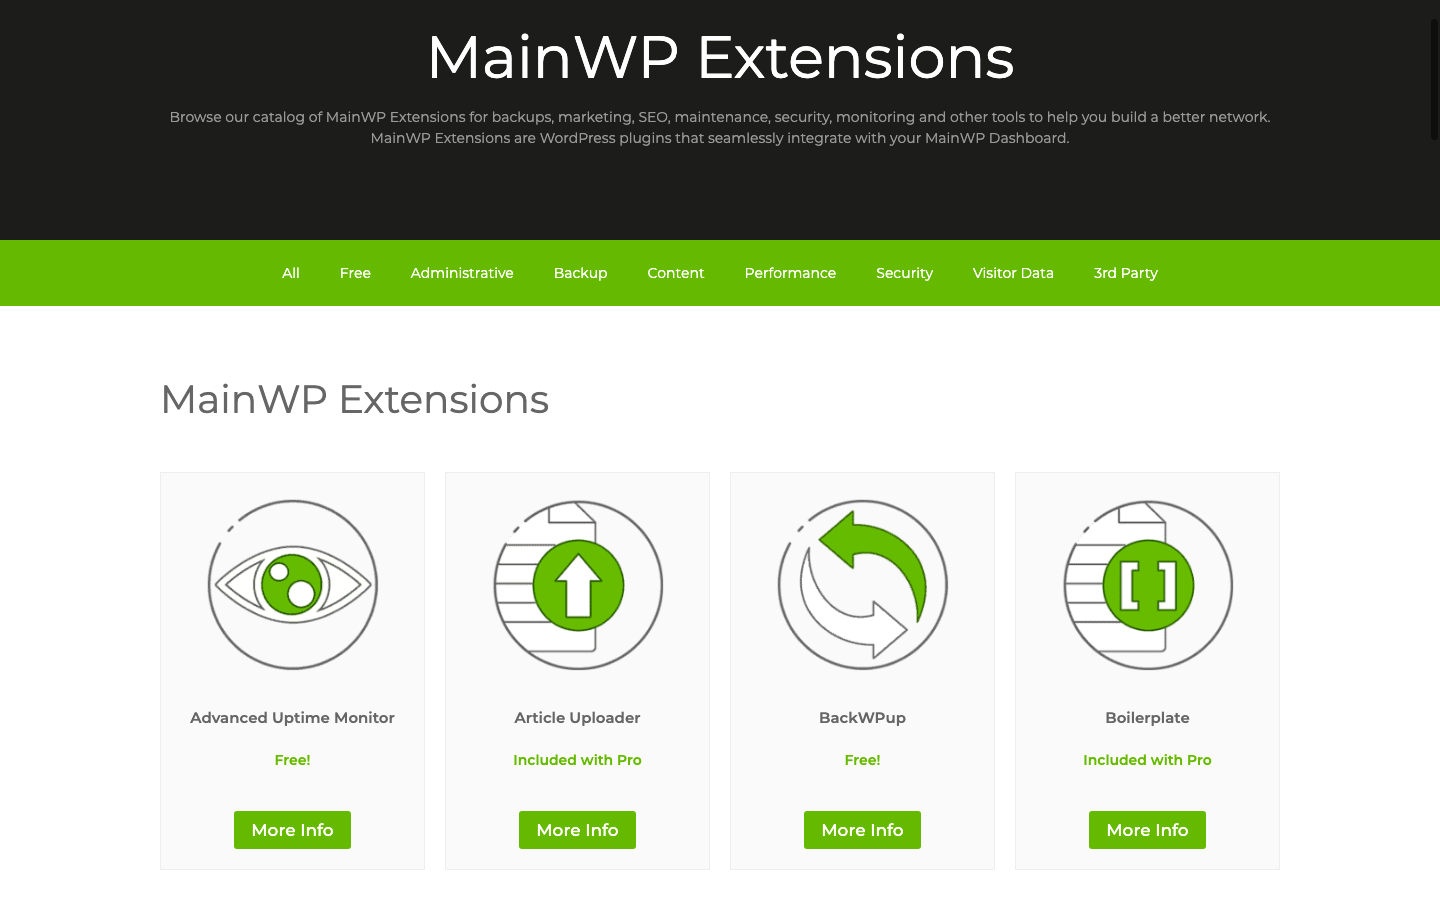 MainWP extensions